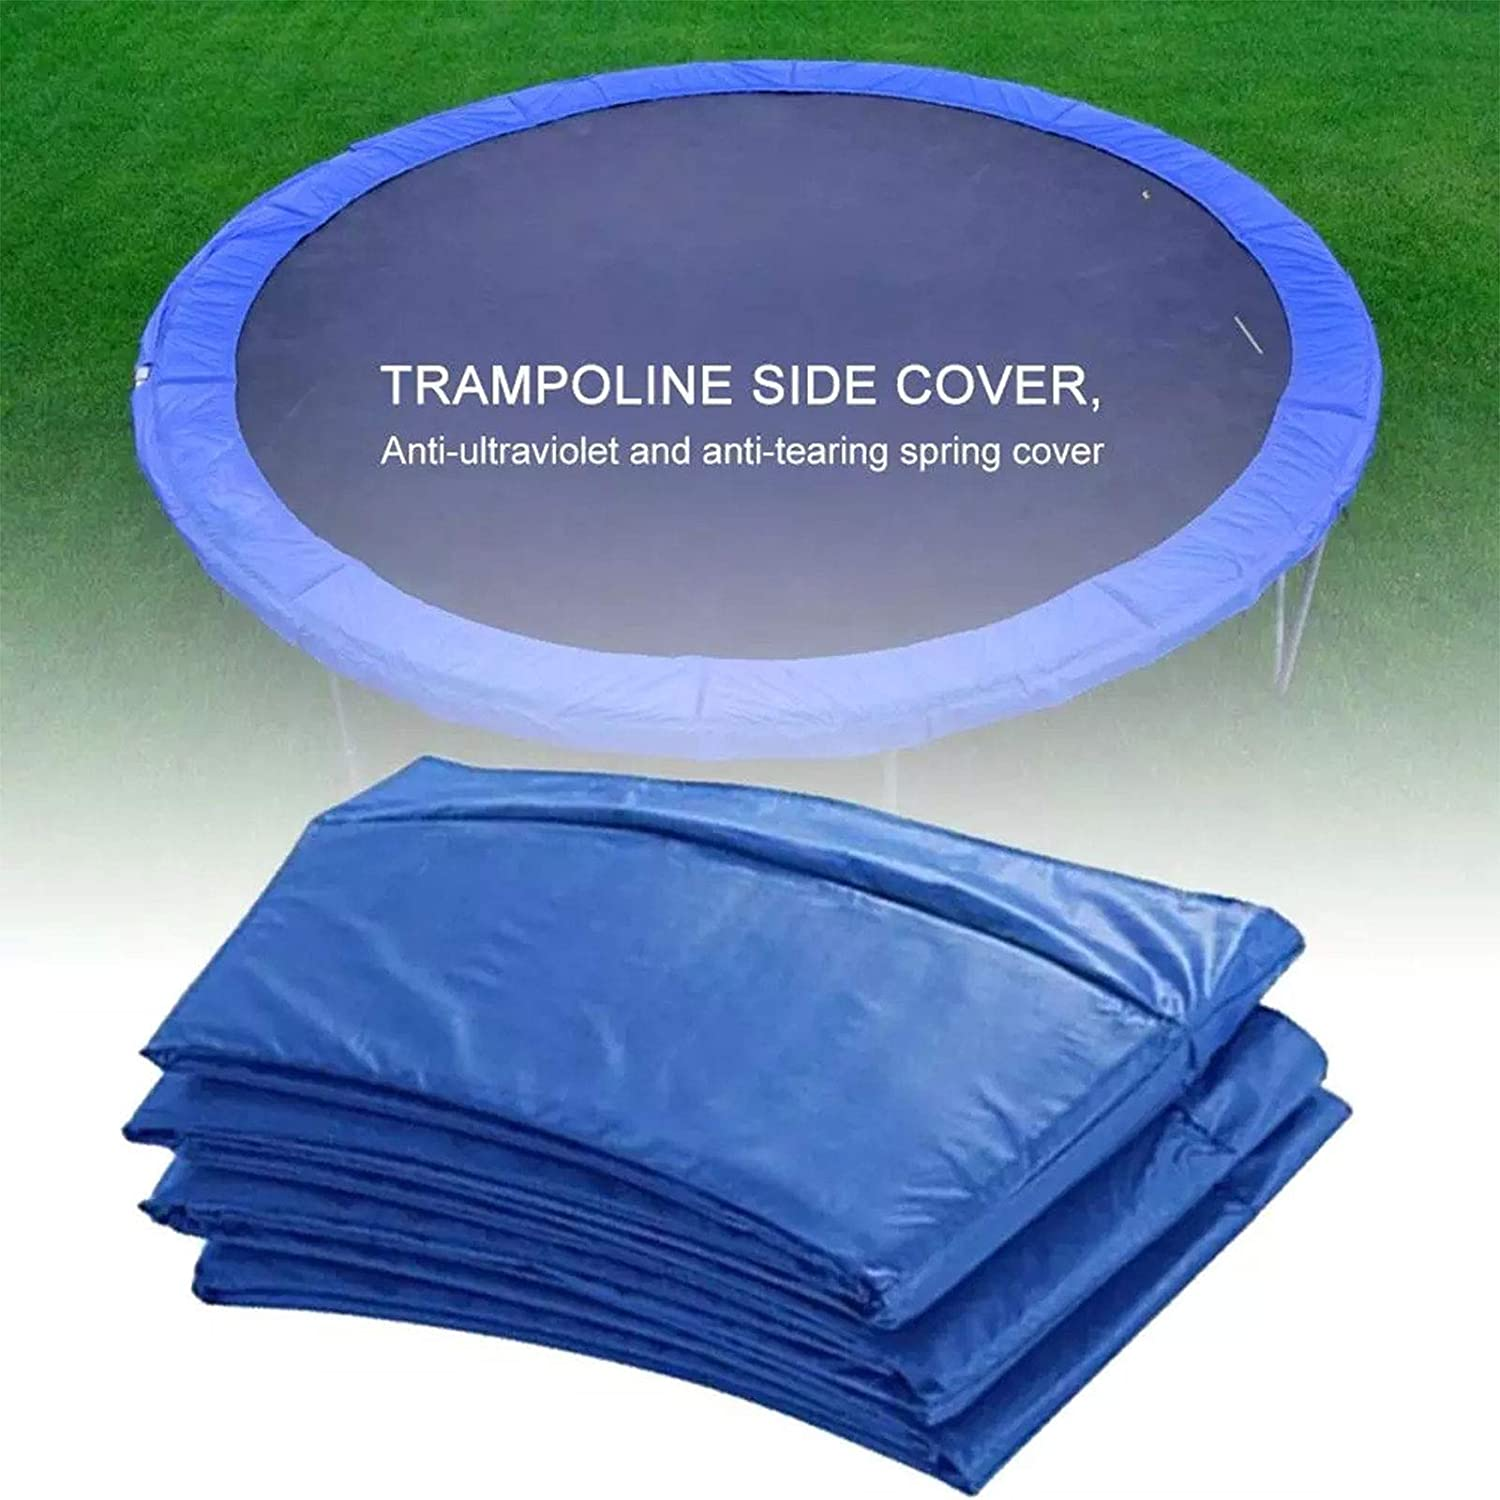 Waterproof Trampoline Accessories Spring Cover,6 feet 1.83m 8ft 10ft 12ft 14ft 15ft 16ft Trampoline Replacement Safety Pad Trampoline Pad No Holes for Pole